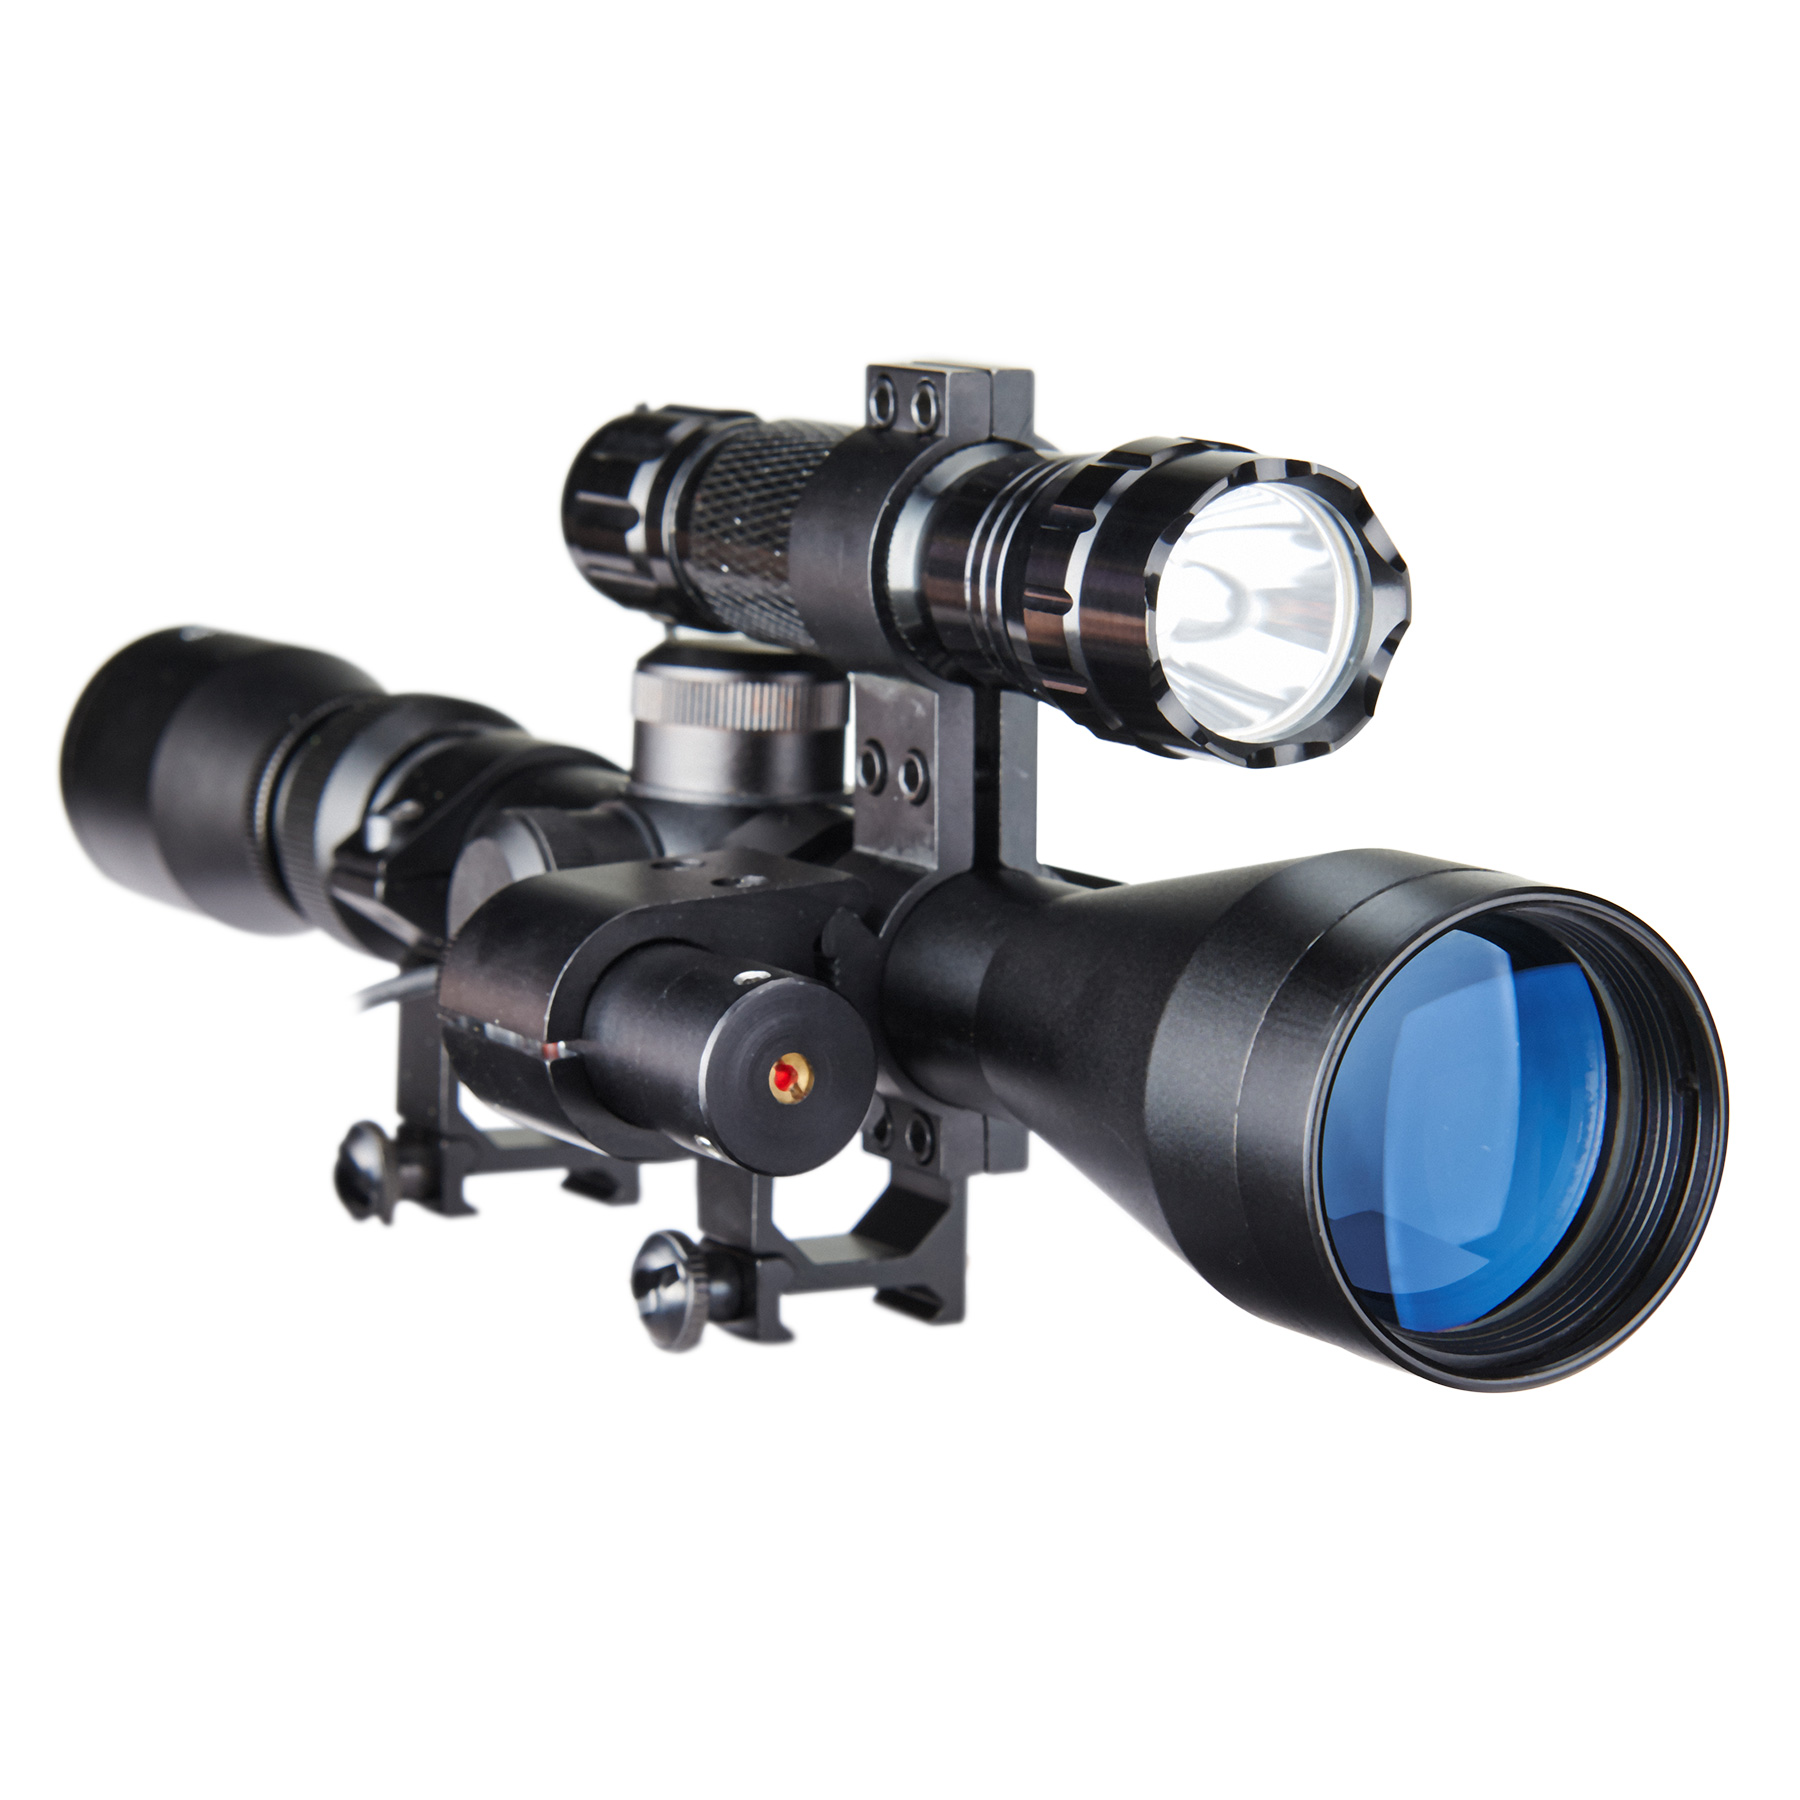 Pinty Tactical 3-9x40 Crosshair Reticle Optics Sniper Hunting  Rifle Scope w/ Red Laser & Torch